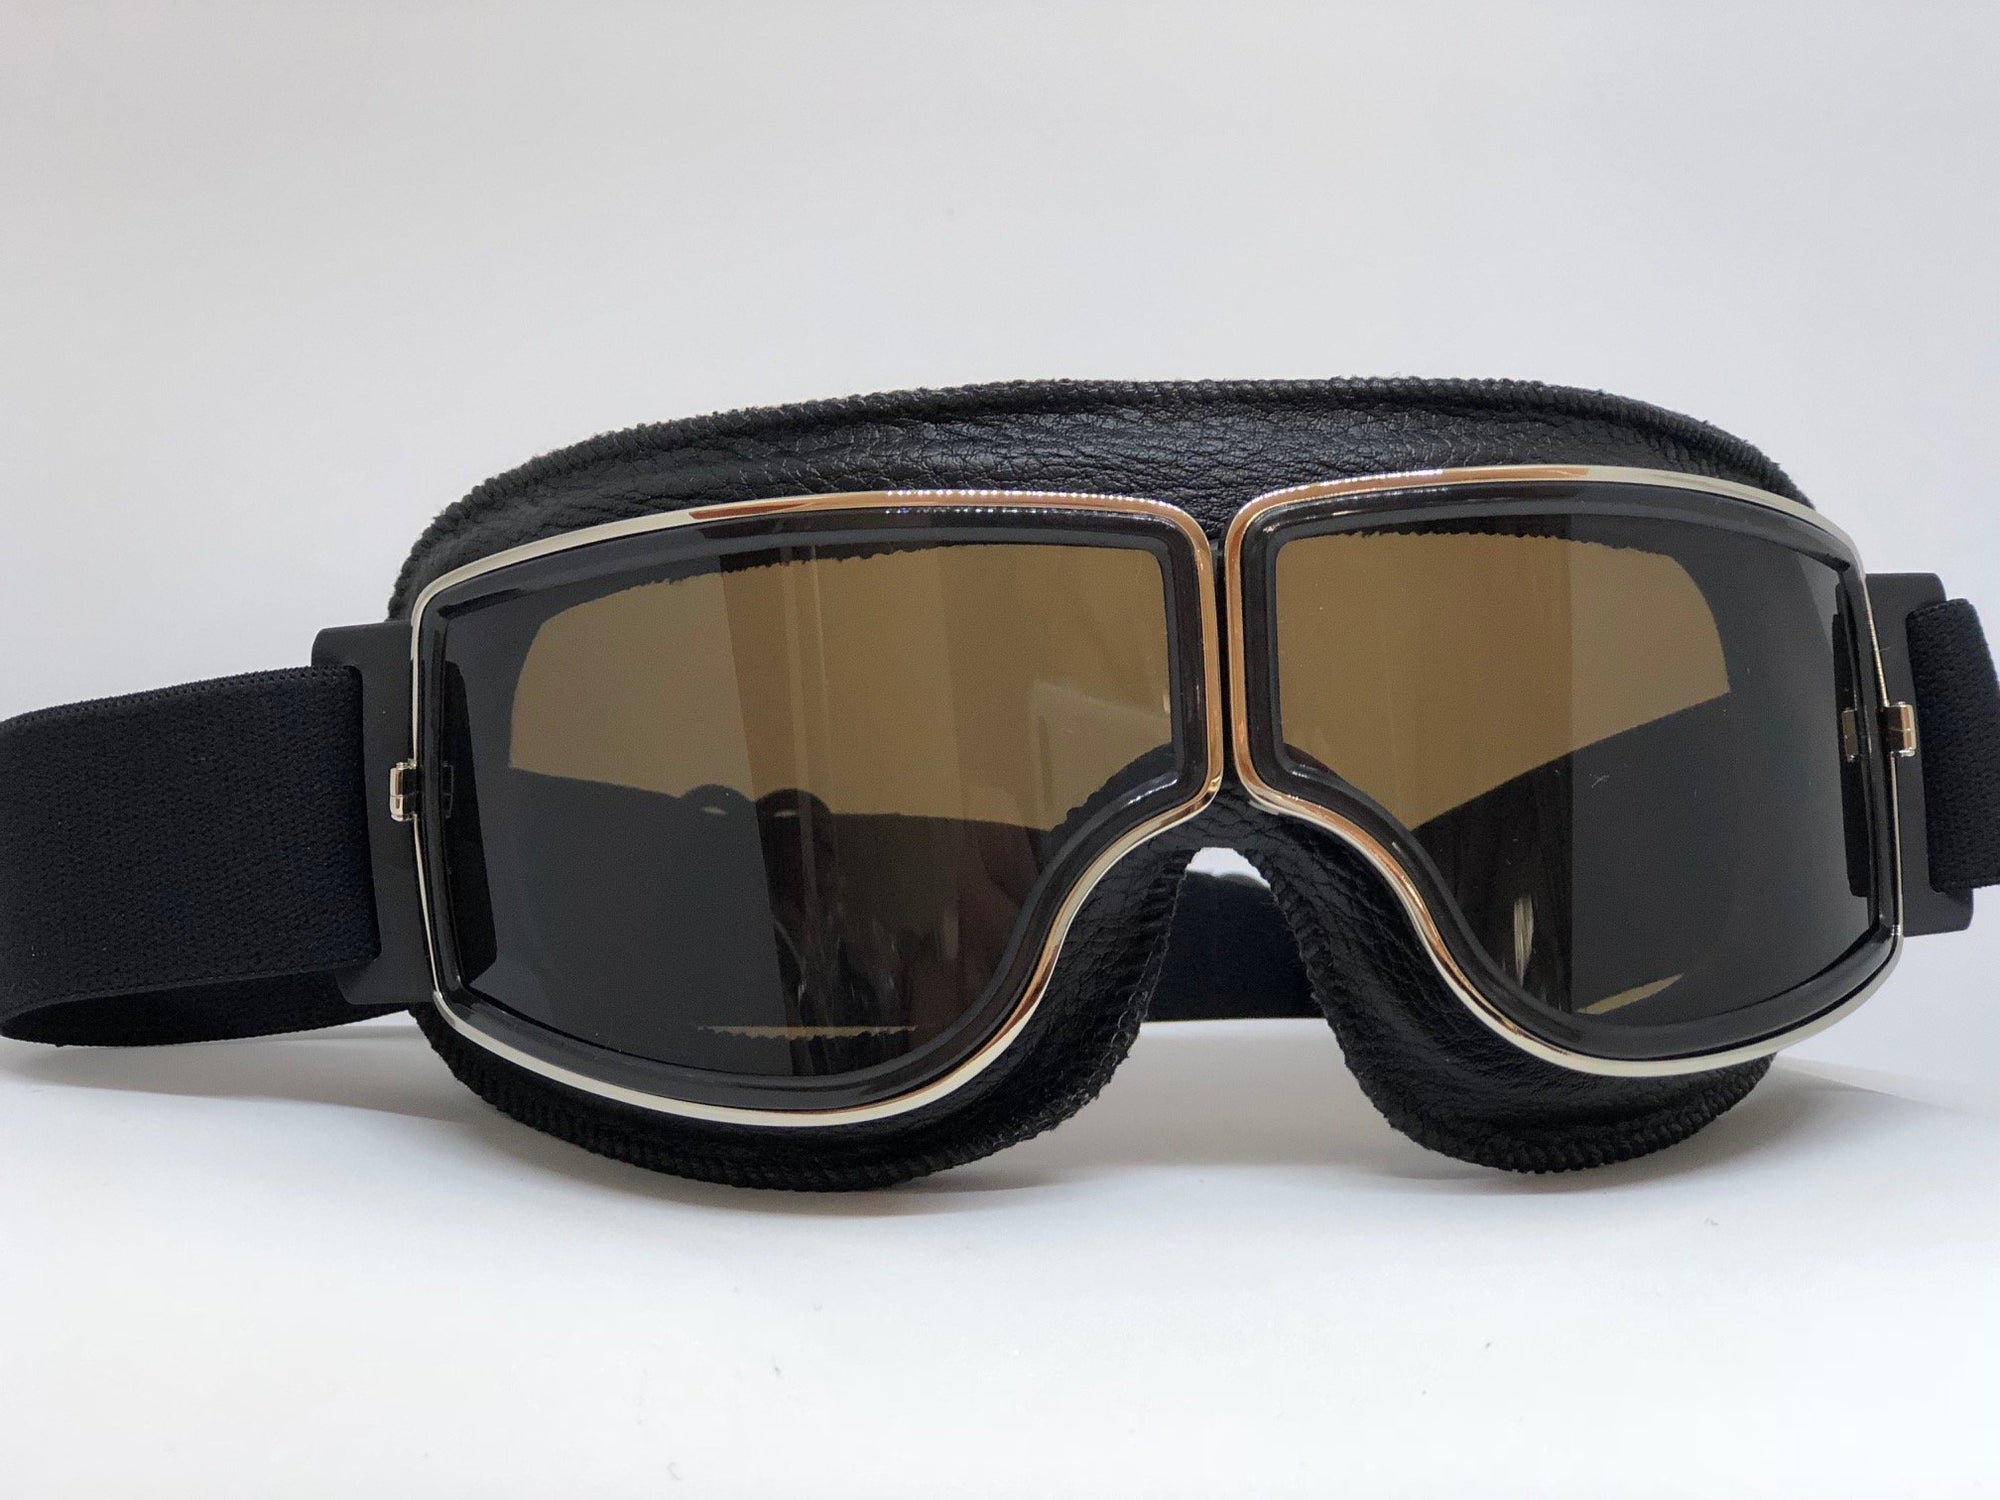 Blackbird - Blackbird Goggles Black with Tinted Lenses - Goggles - Salt Flats Clothing